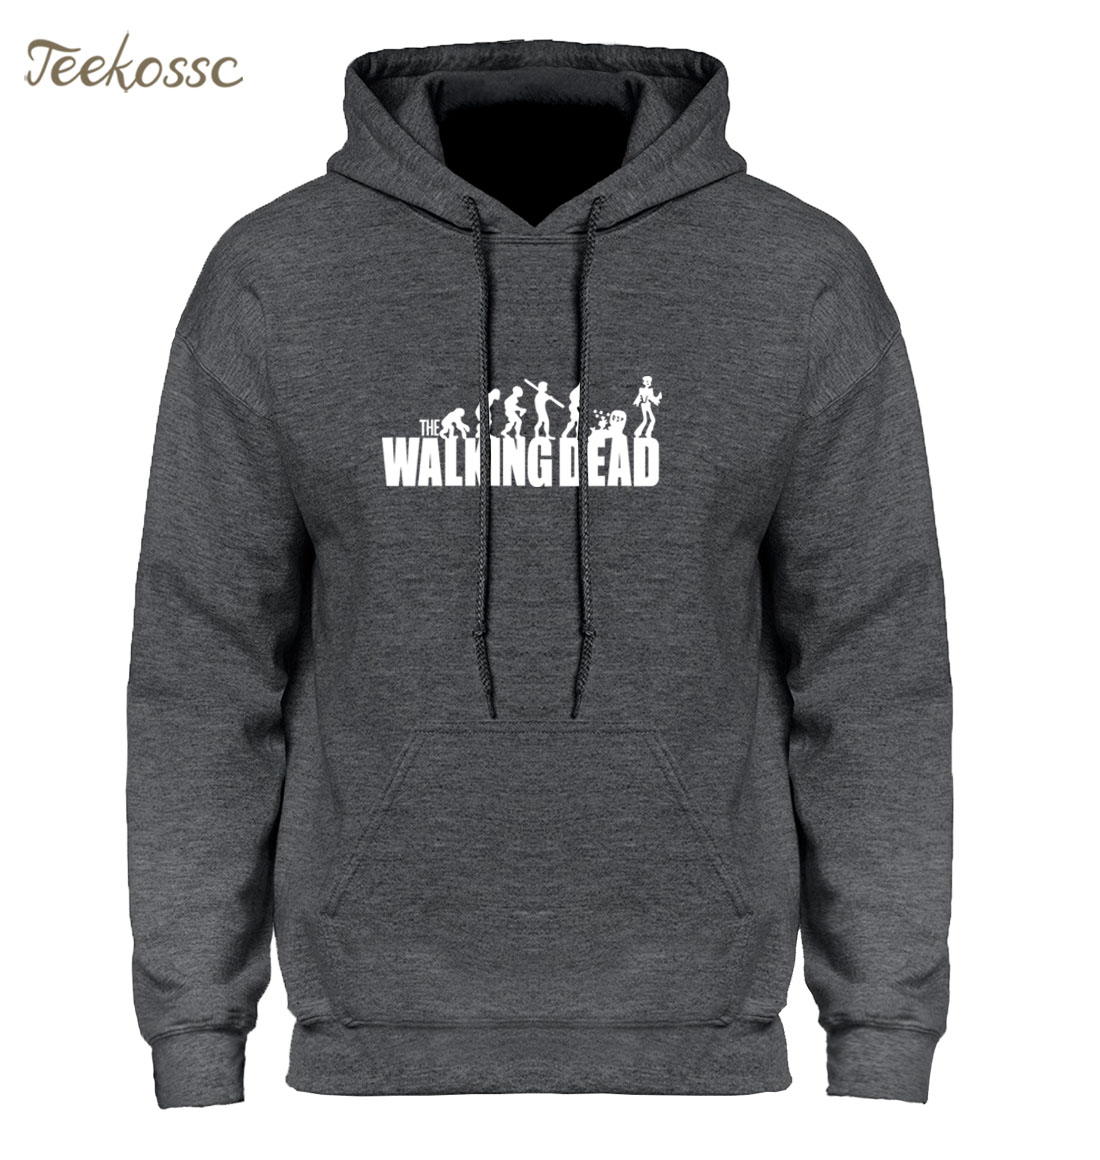 The Walking Dead Men Hoodie Hoodies Sweatshirt 2018 New Fashion Winter Autumn Hooded Hoody Hip Hop Streetwear Hombre Mens Loose